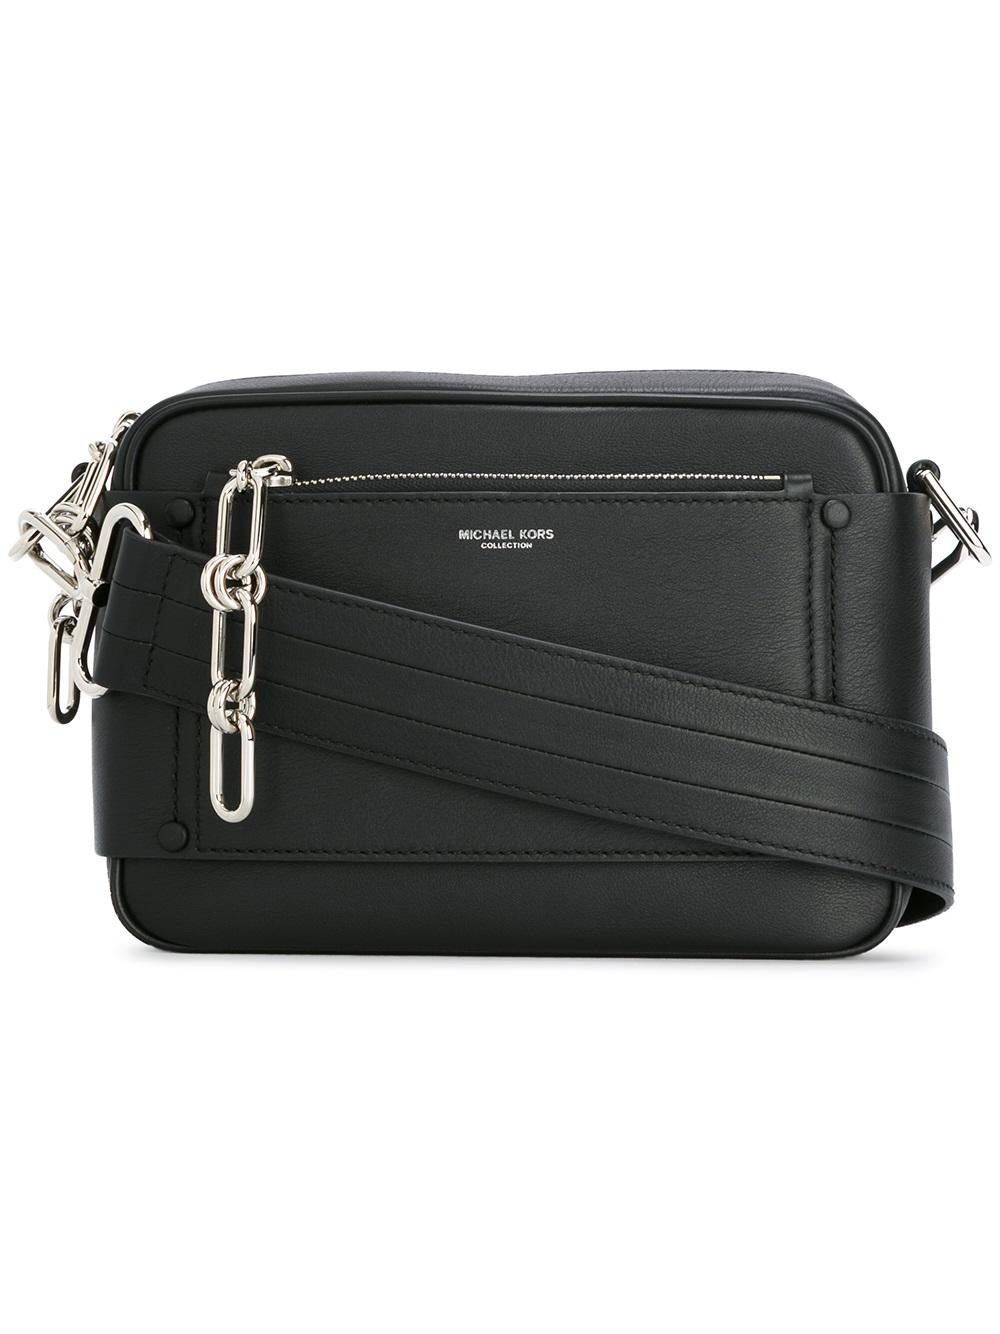 Michael Kors Camera Shoulder Bag - Farfetch